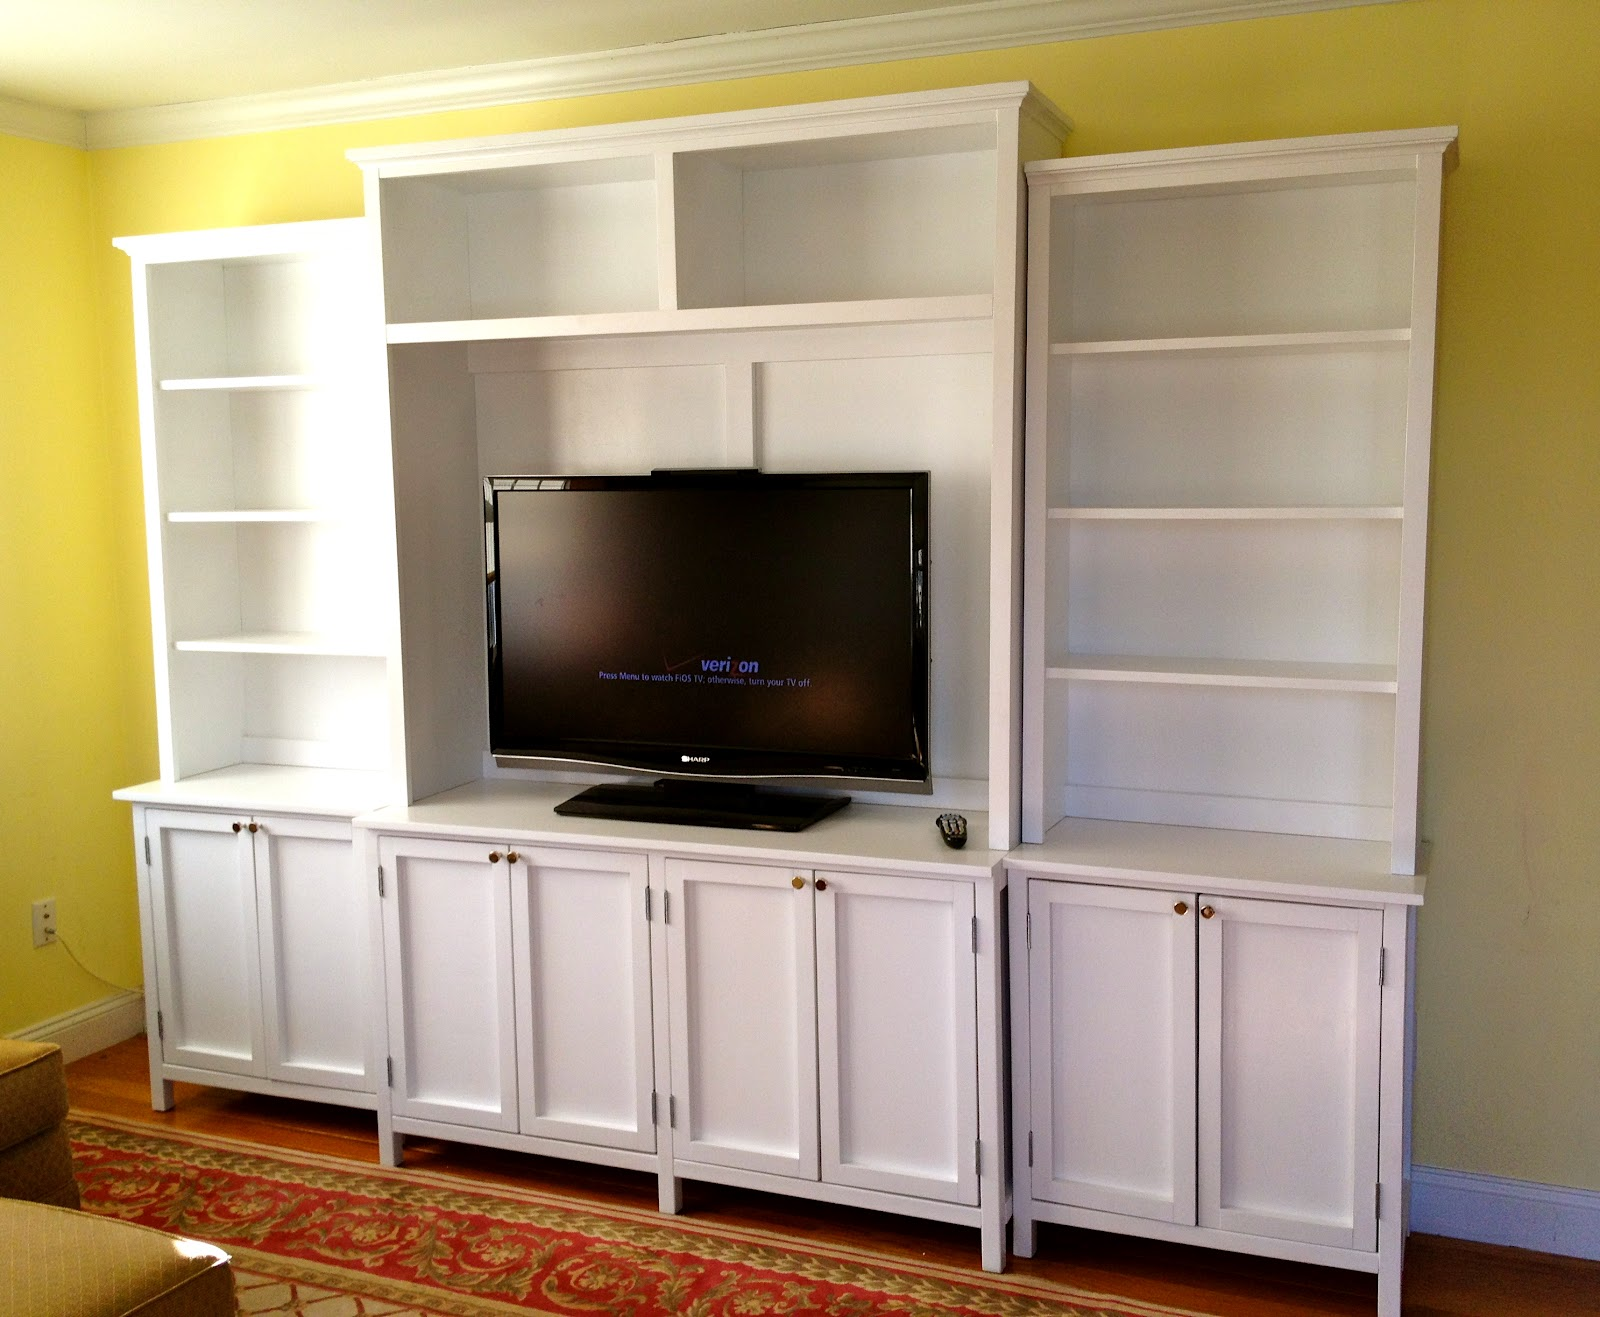 Diy media cabinet with doors shelves jaime costiglio diy media cabinet with doors shelves solutioingenieria Choice Image